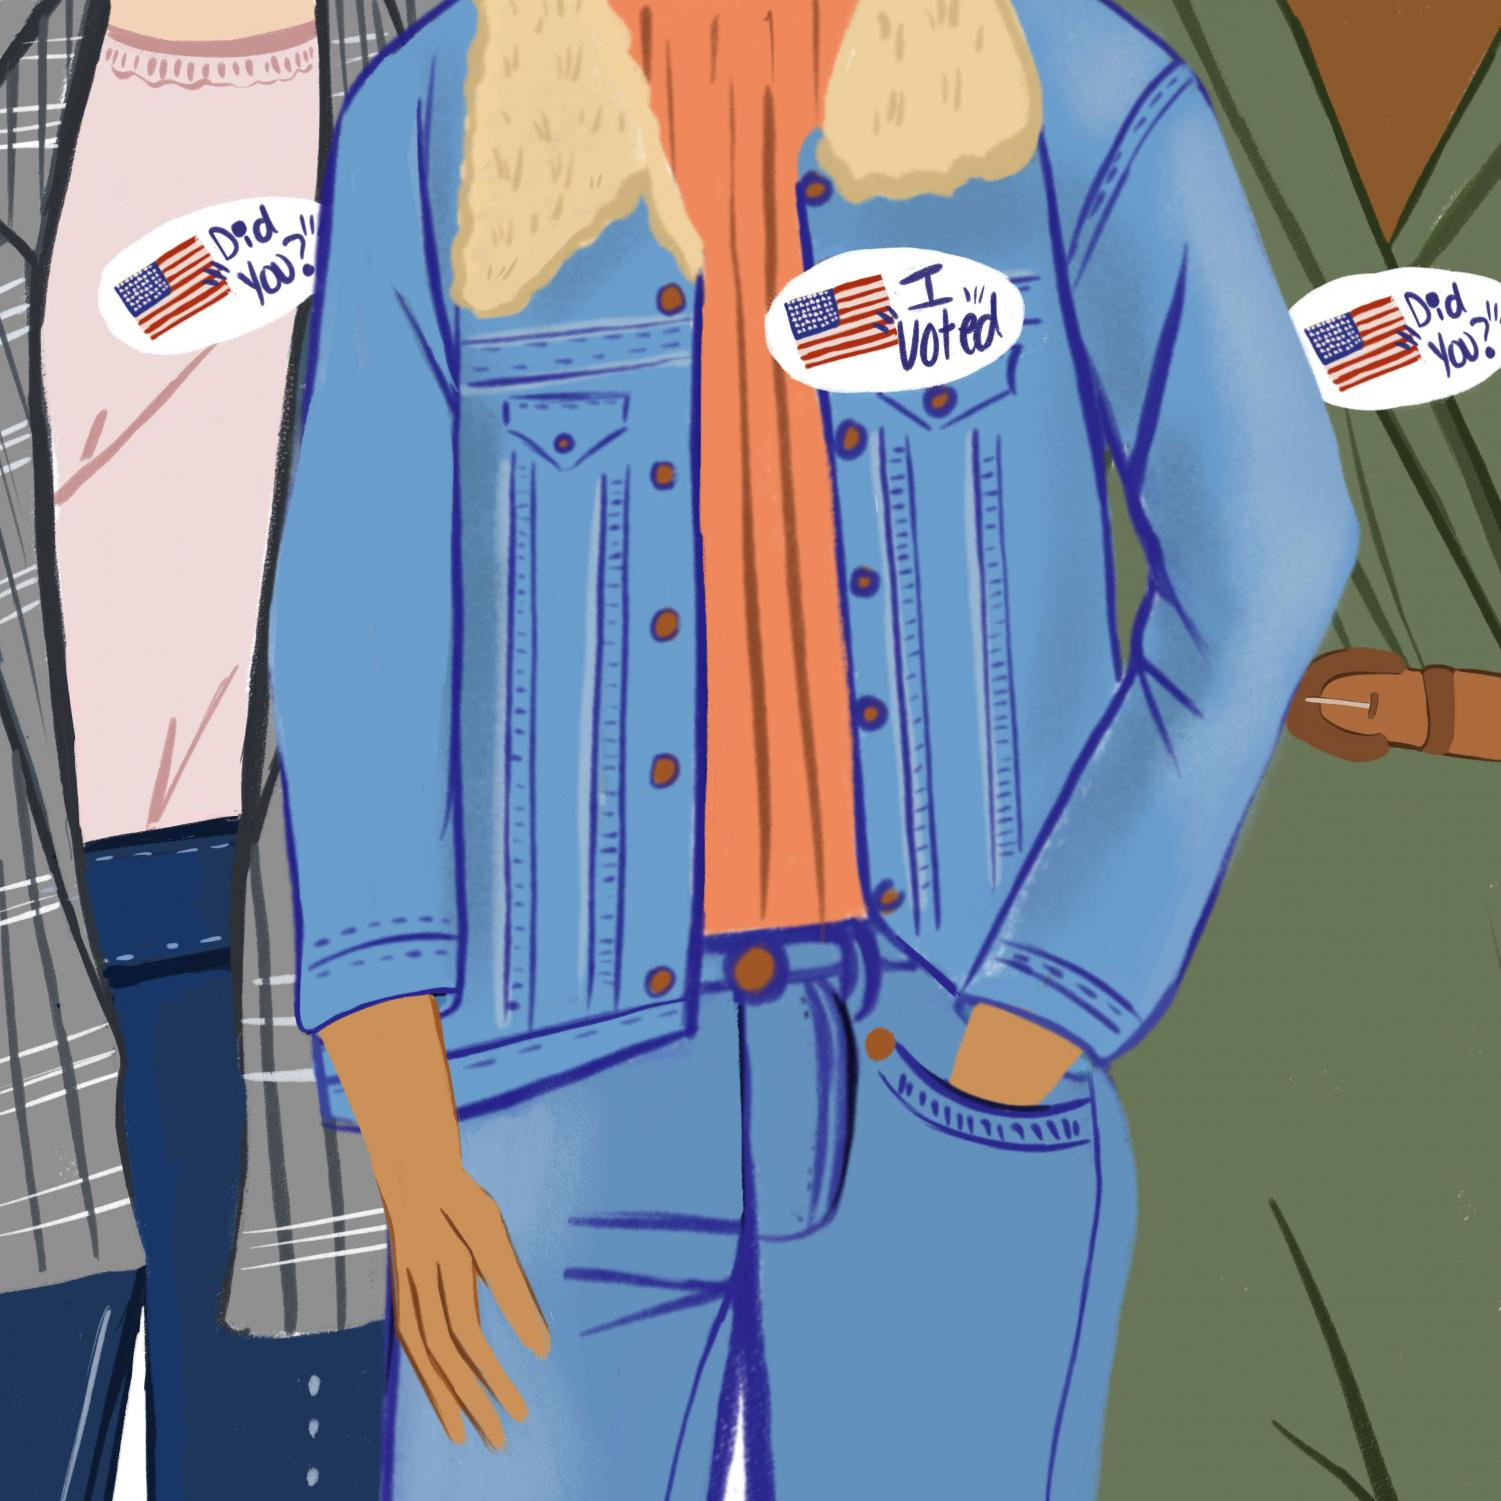 Race, representation and repression: Chicago voters are looking for changes